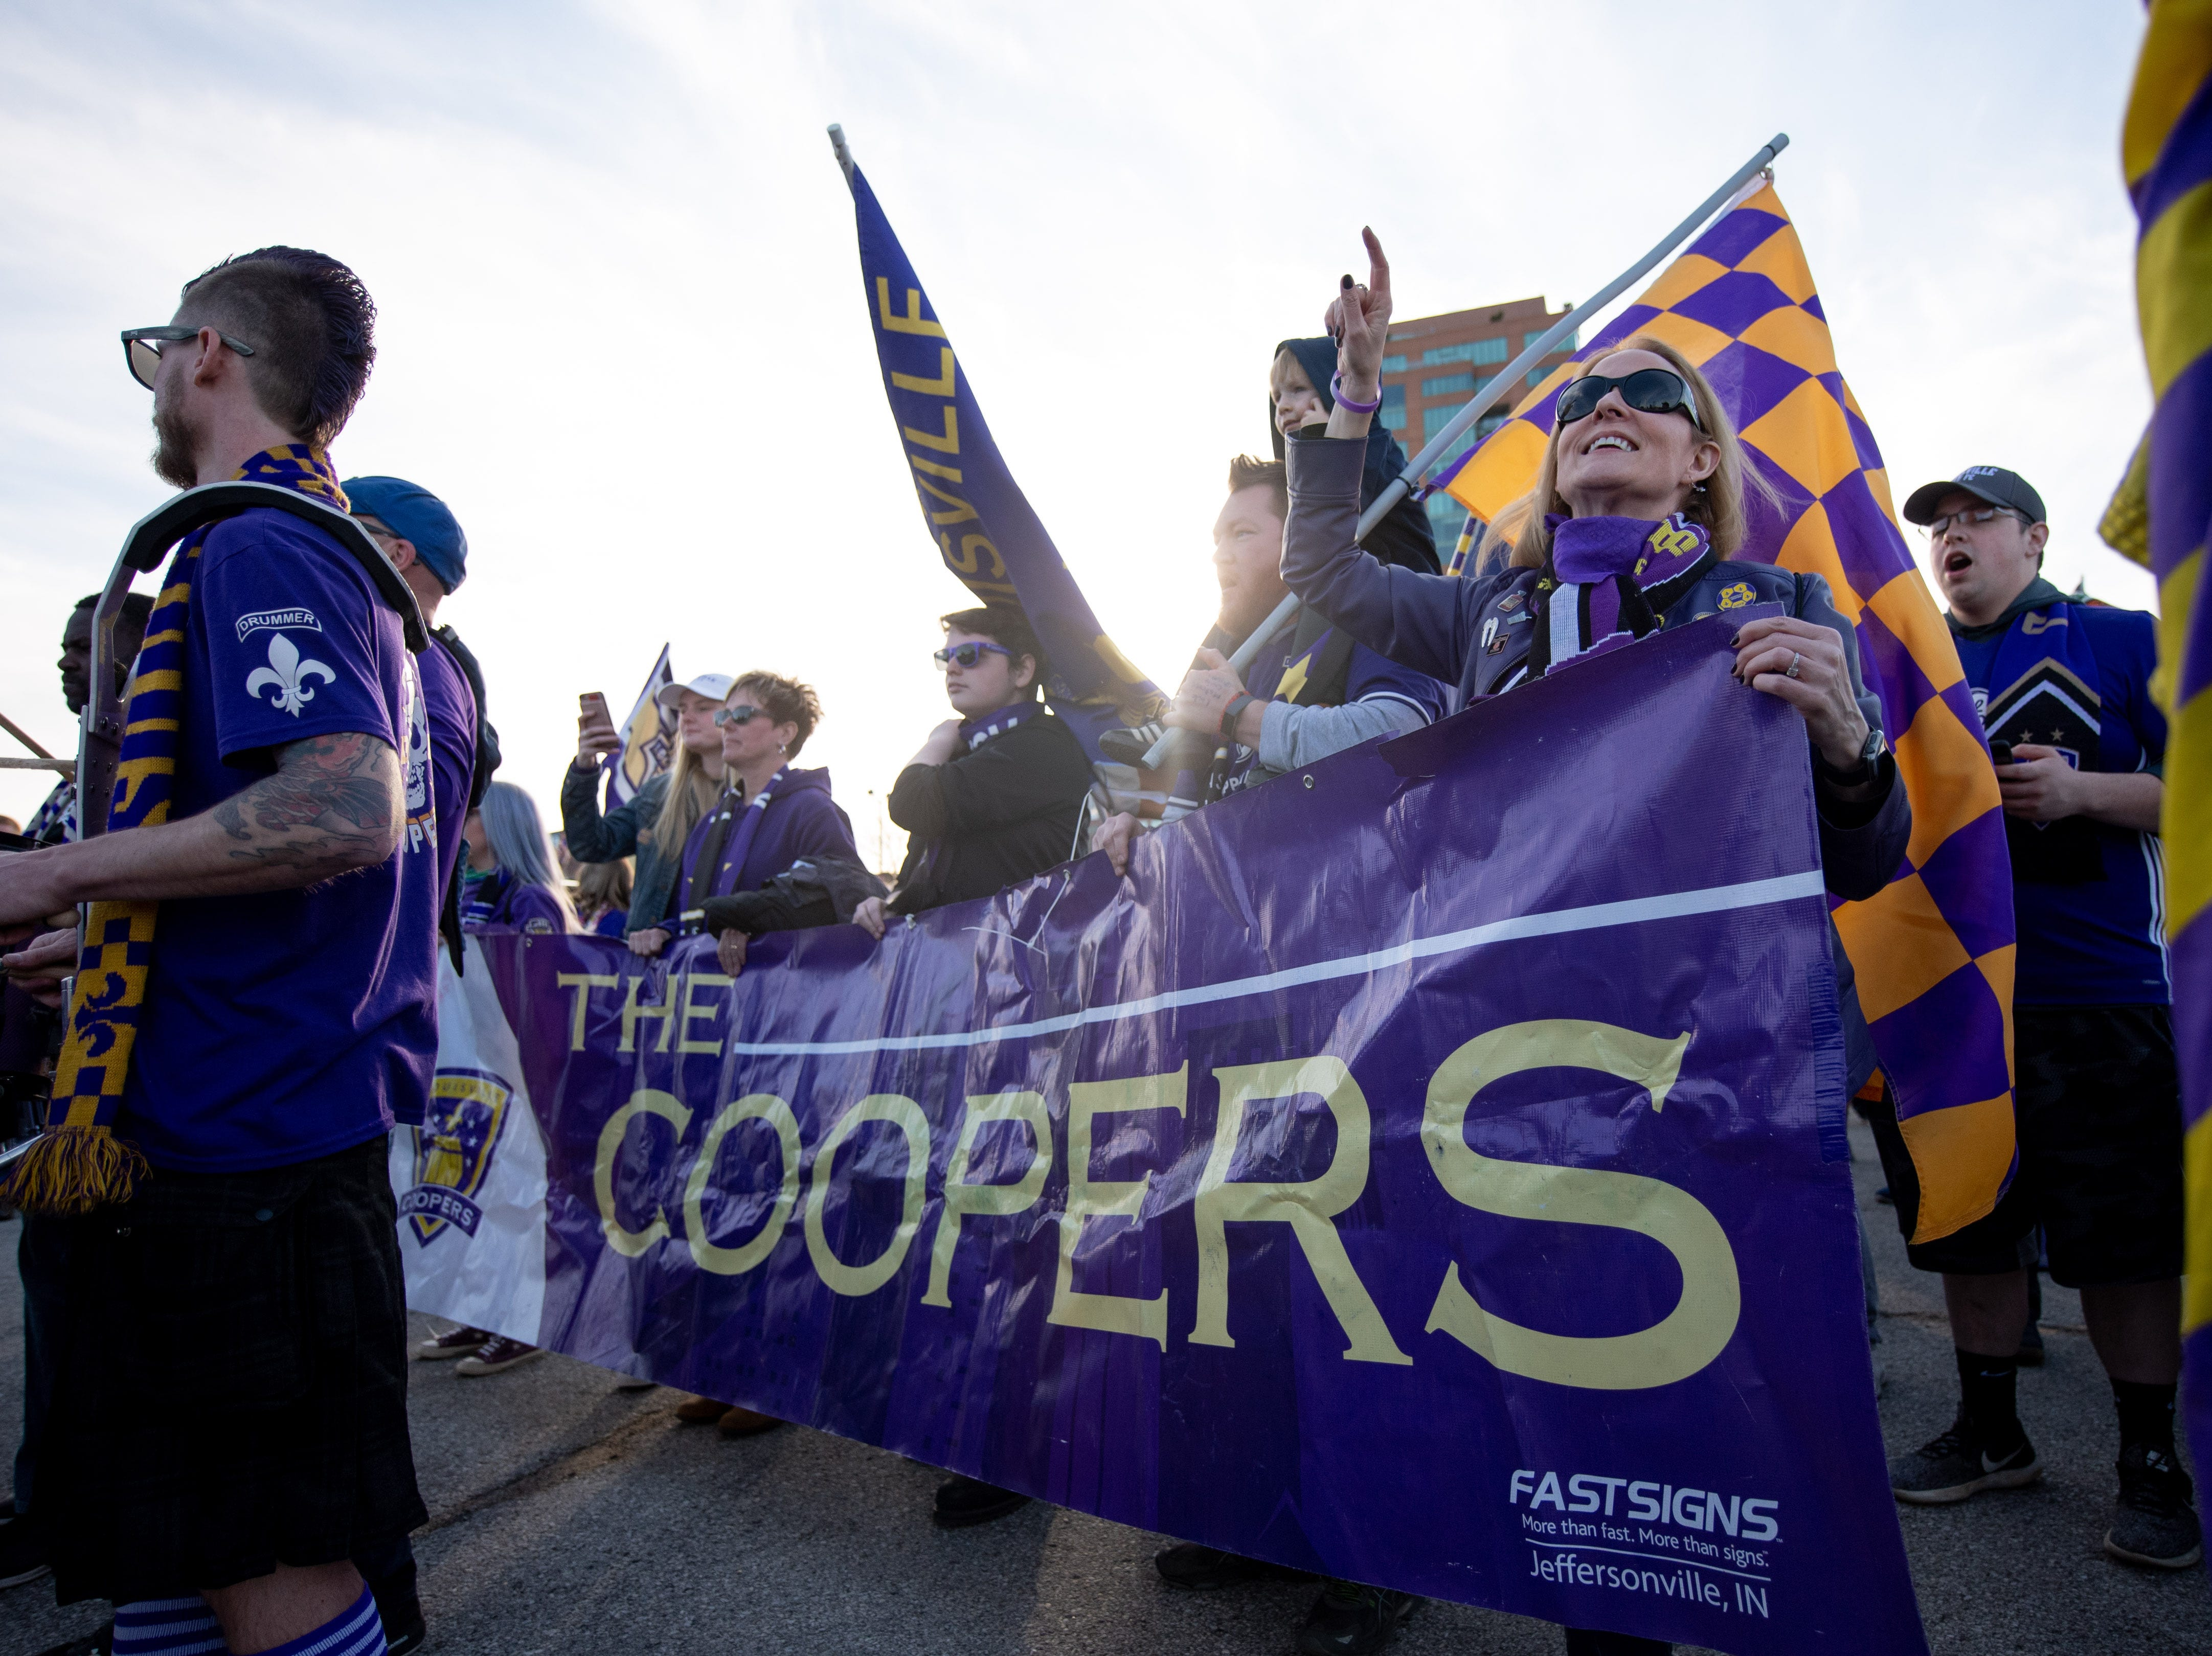 Louisville City FC fans celebrate before the match in Louisville, Ky., Saturday, March 23, 2019.